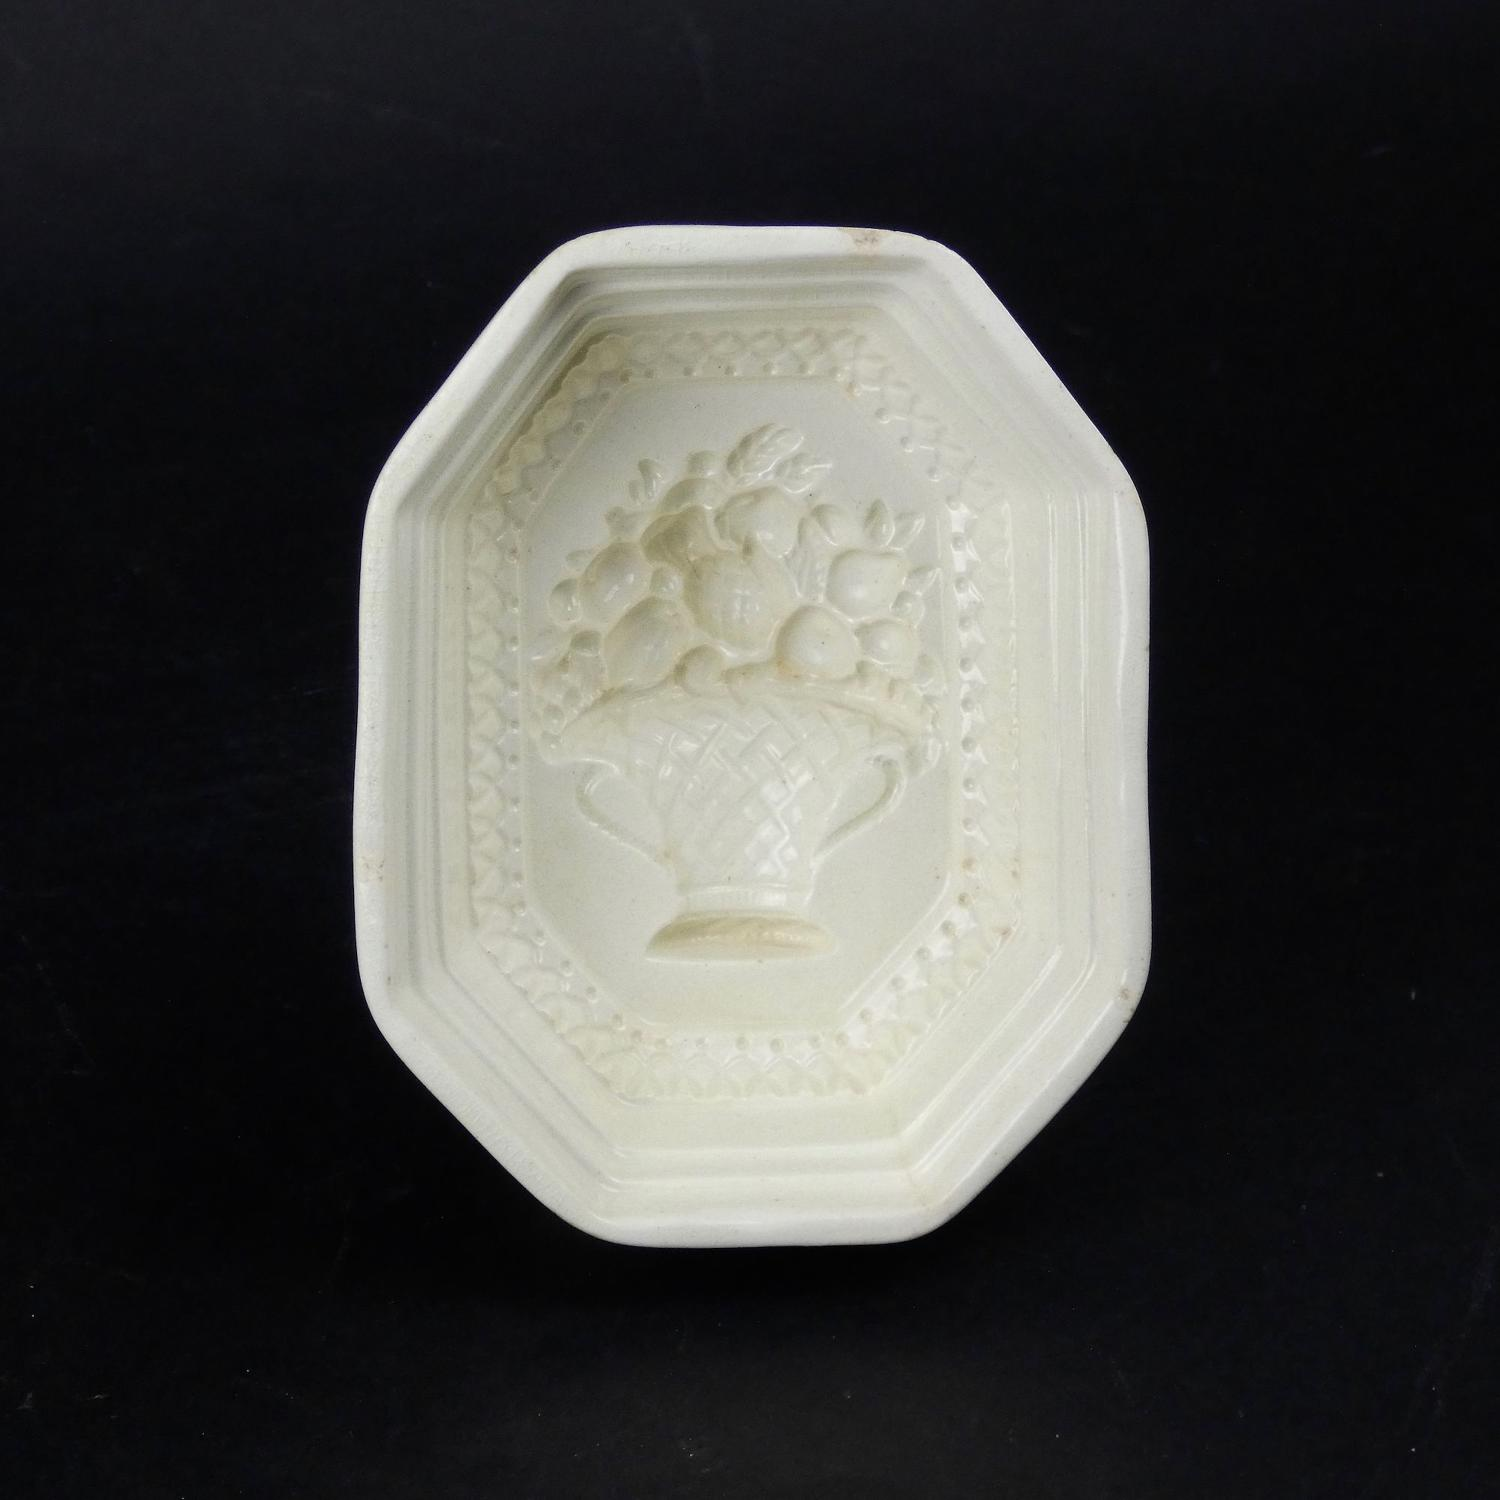 Davenport creamware mould